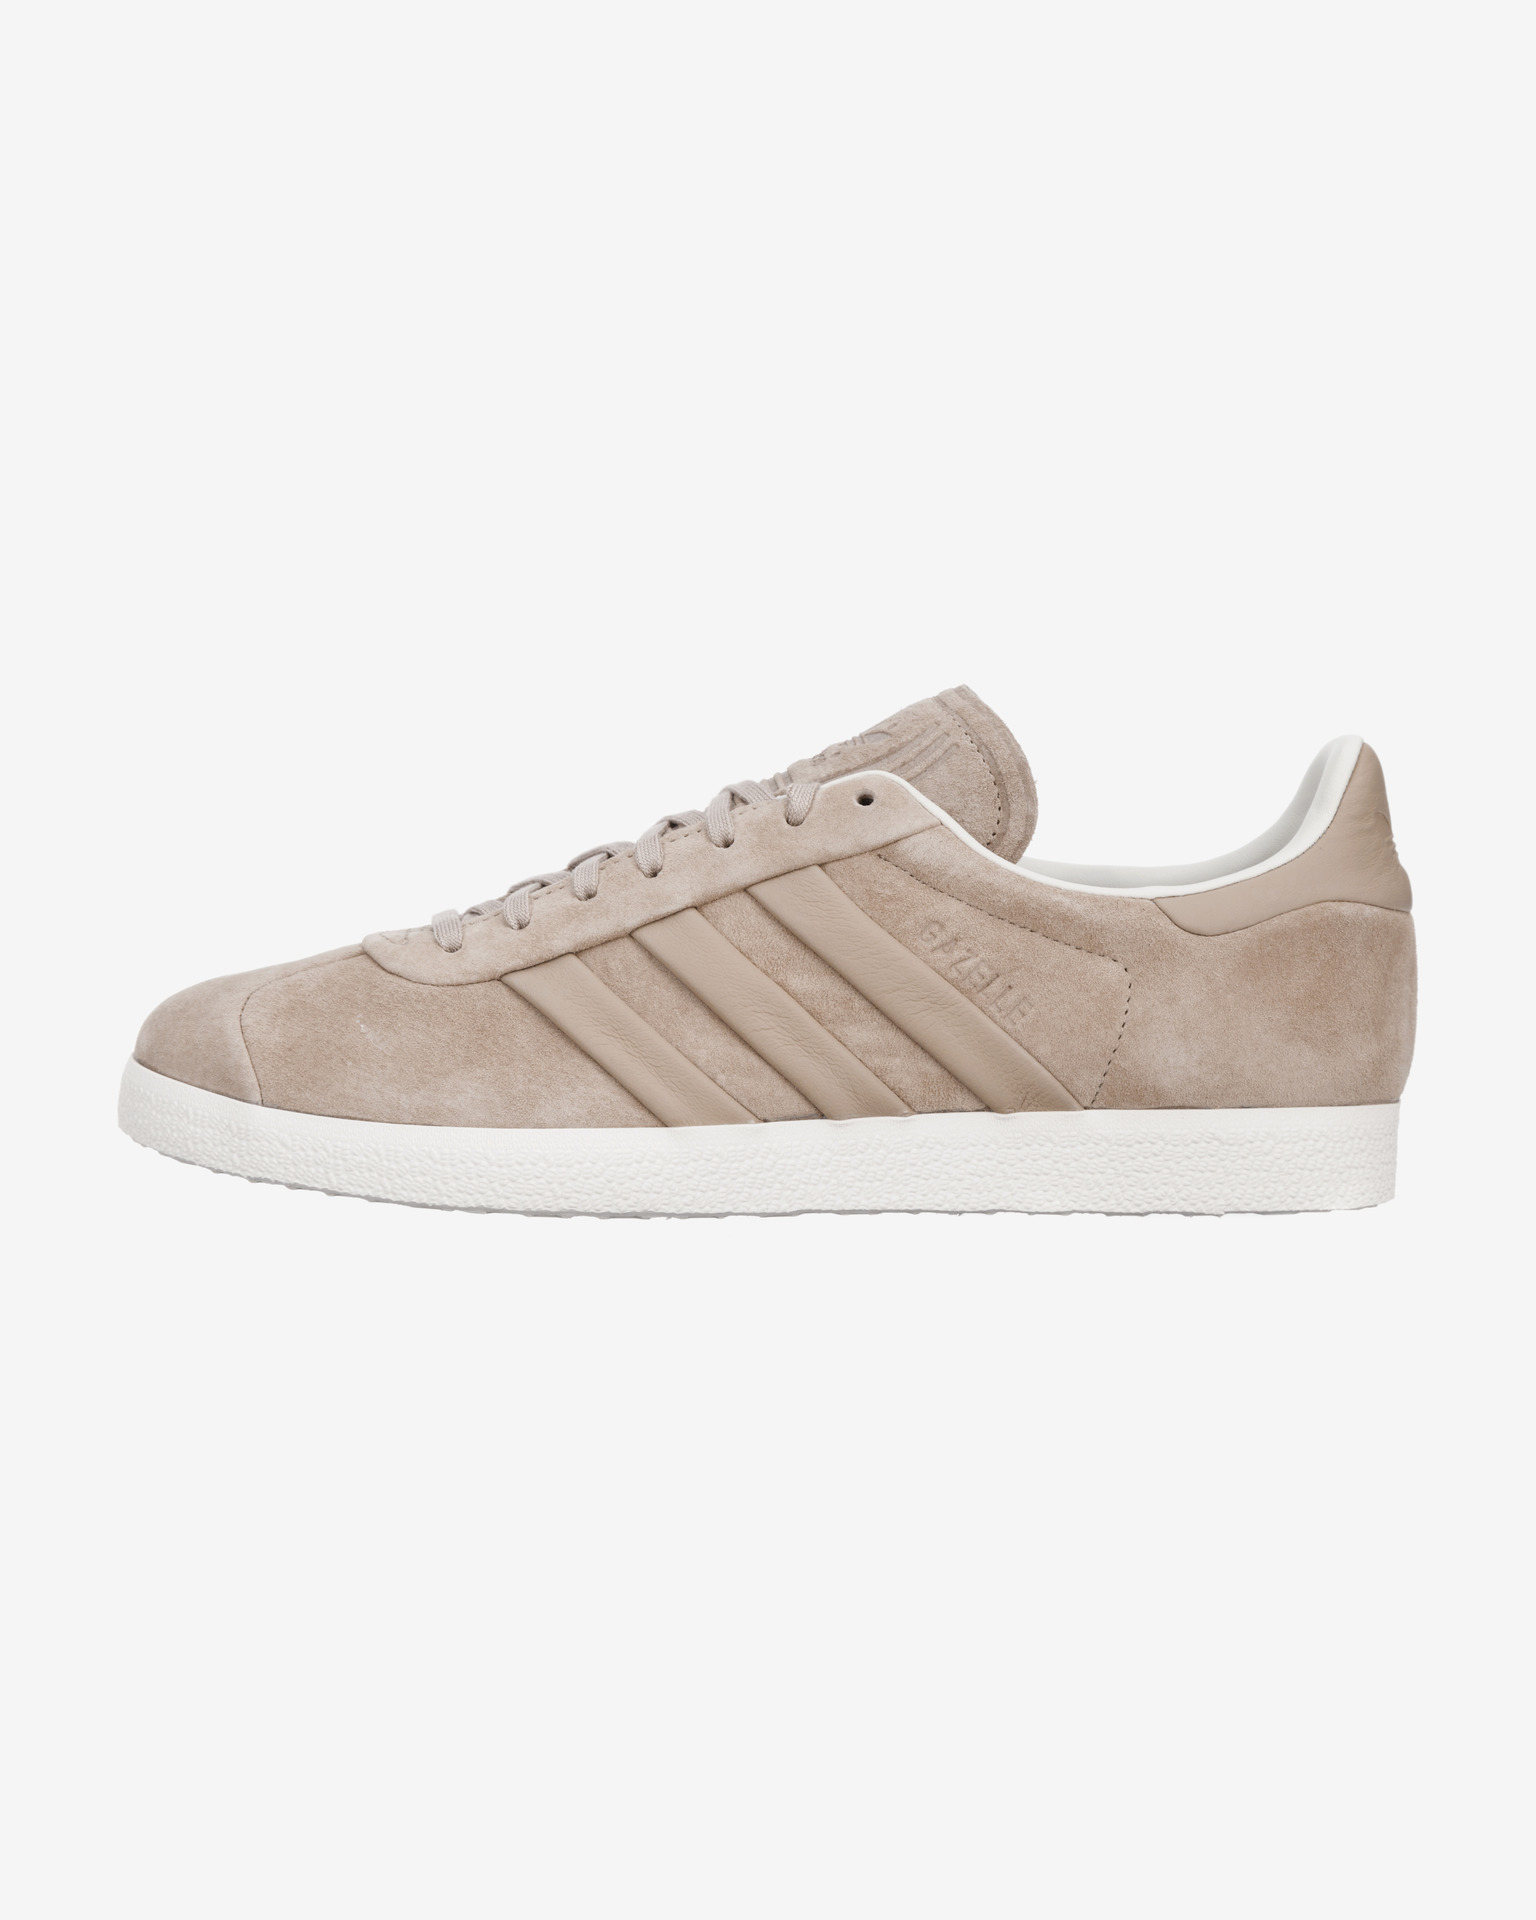 free shipping 7aa76 a625c adidas Originals Gazelle Stitch and Turn Sneakers